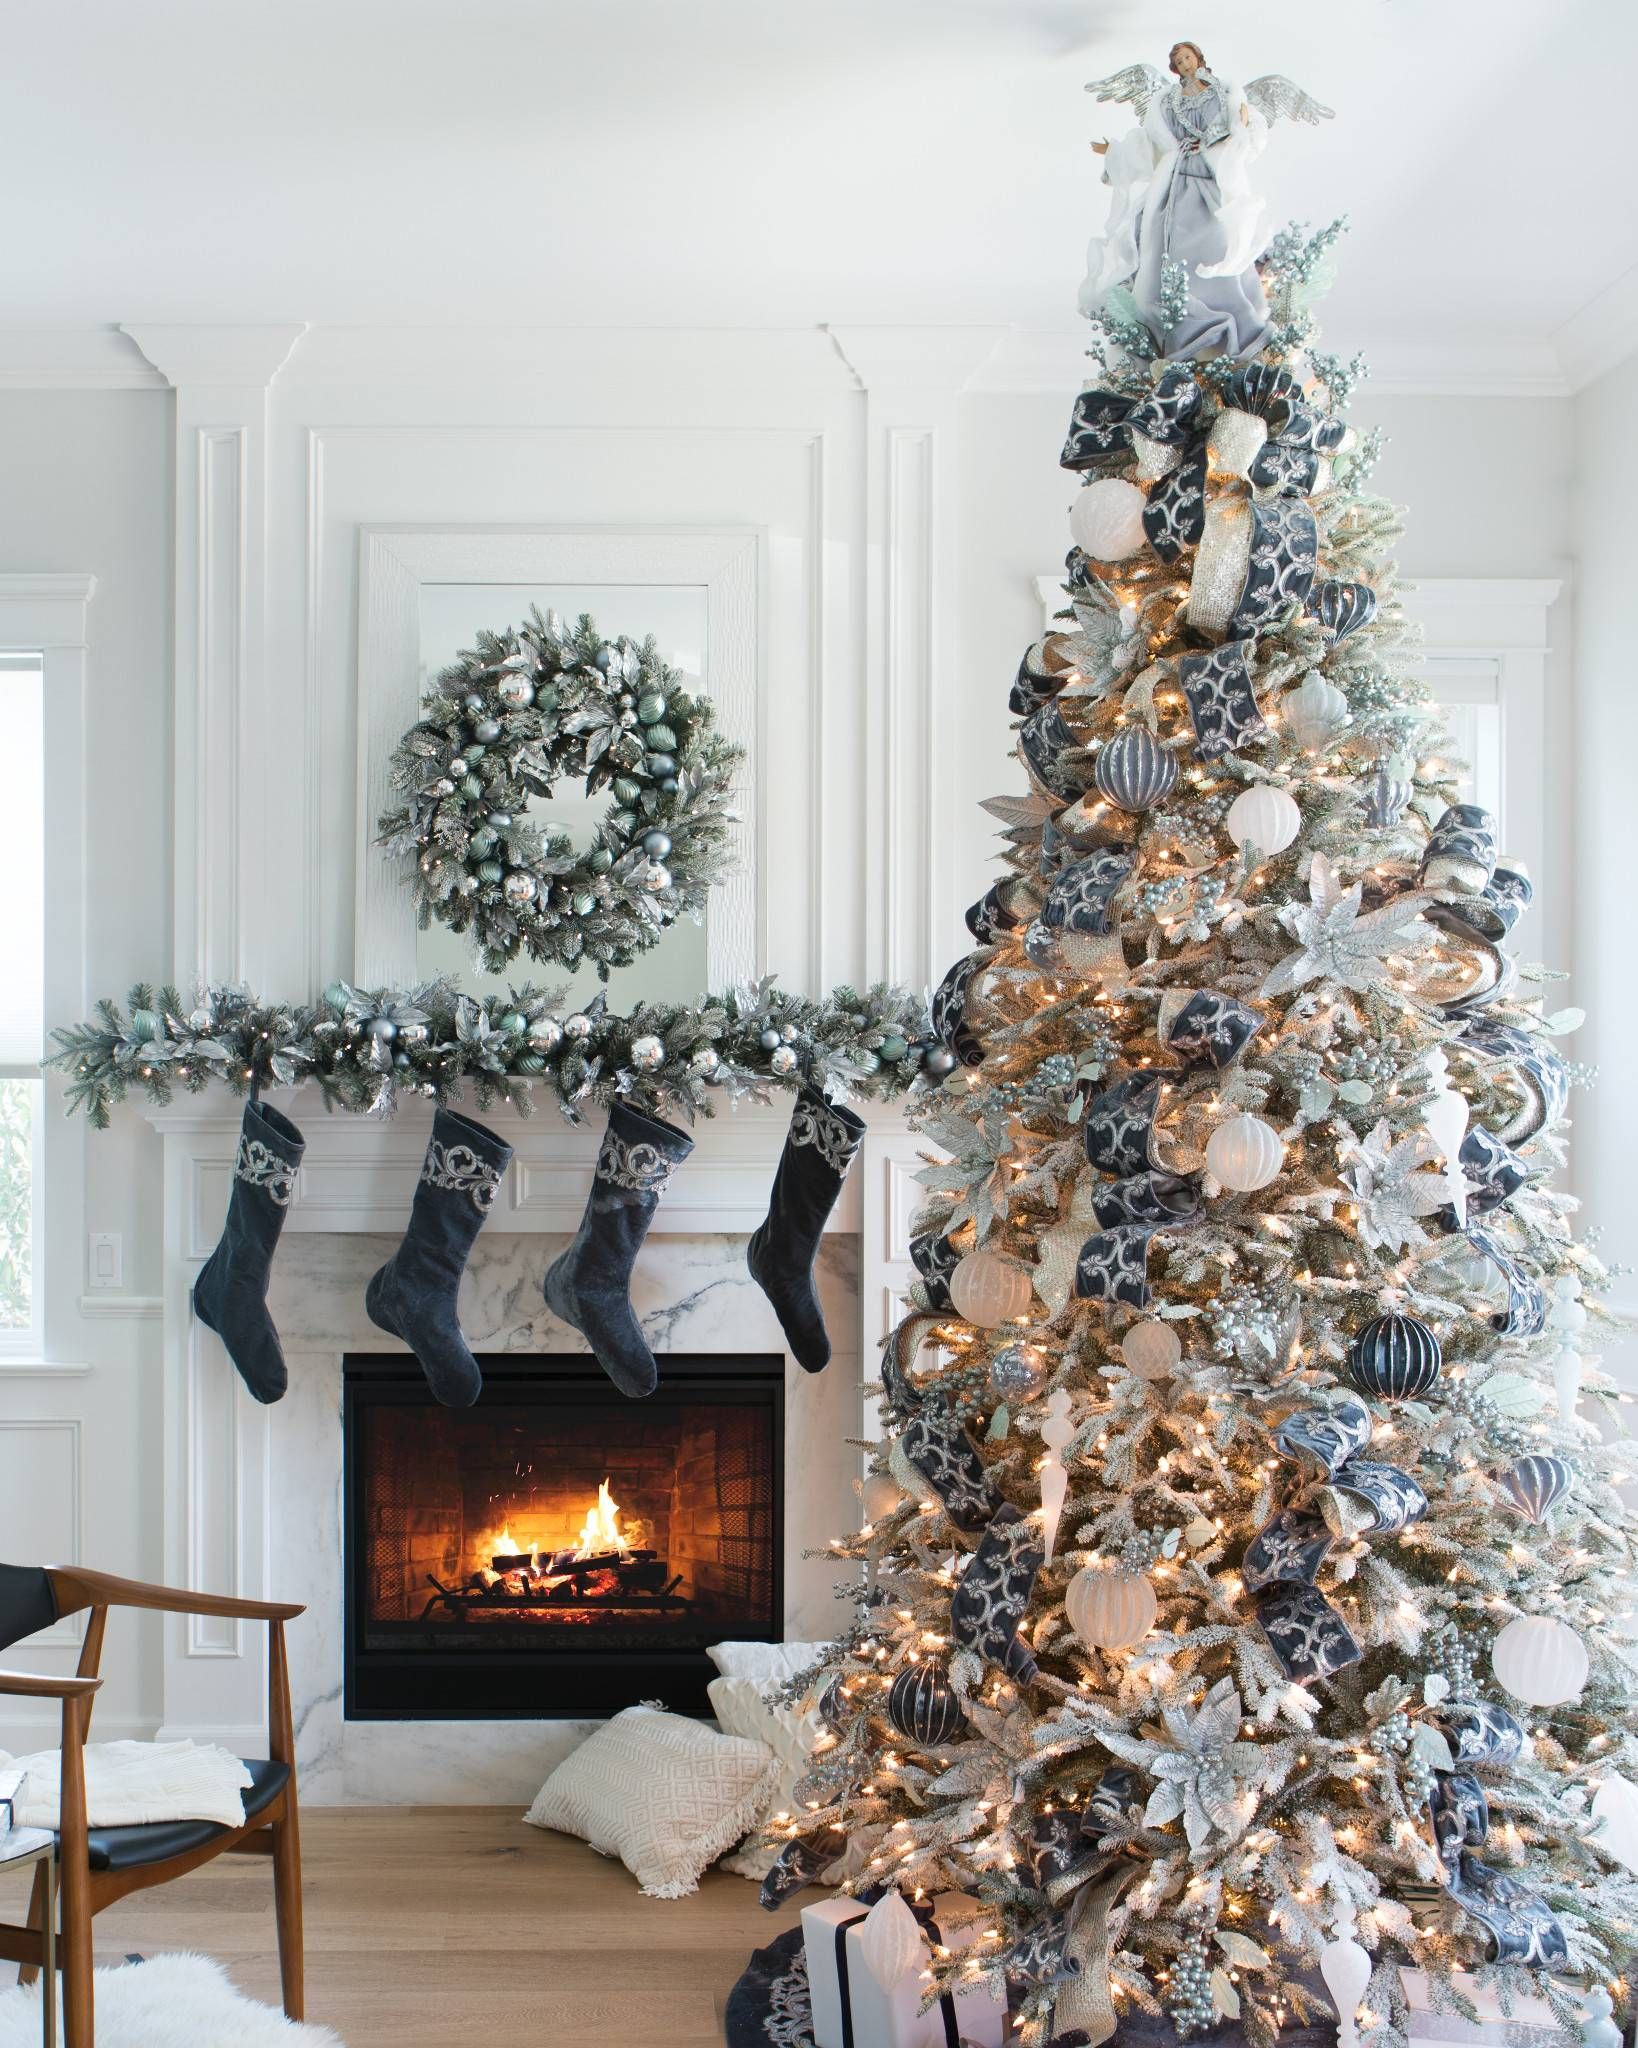 Bh Frosted Fraser Fir 8482 Narrow Christmas Tree Christmas Tree Decorations Balsam Hill Christmas Tree